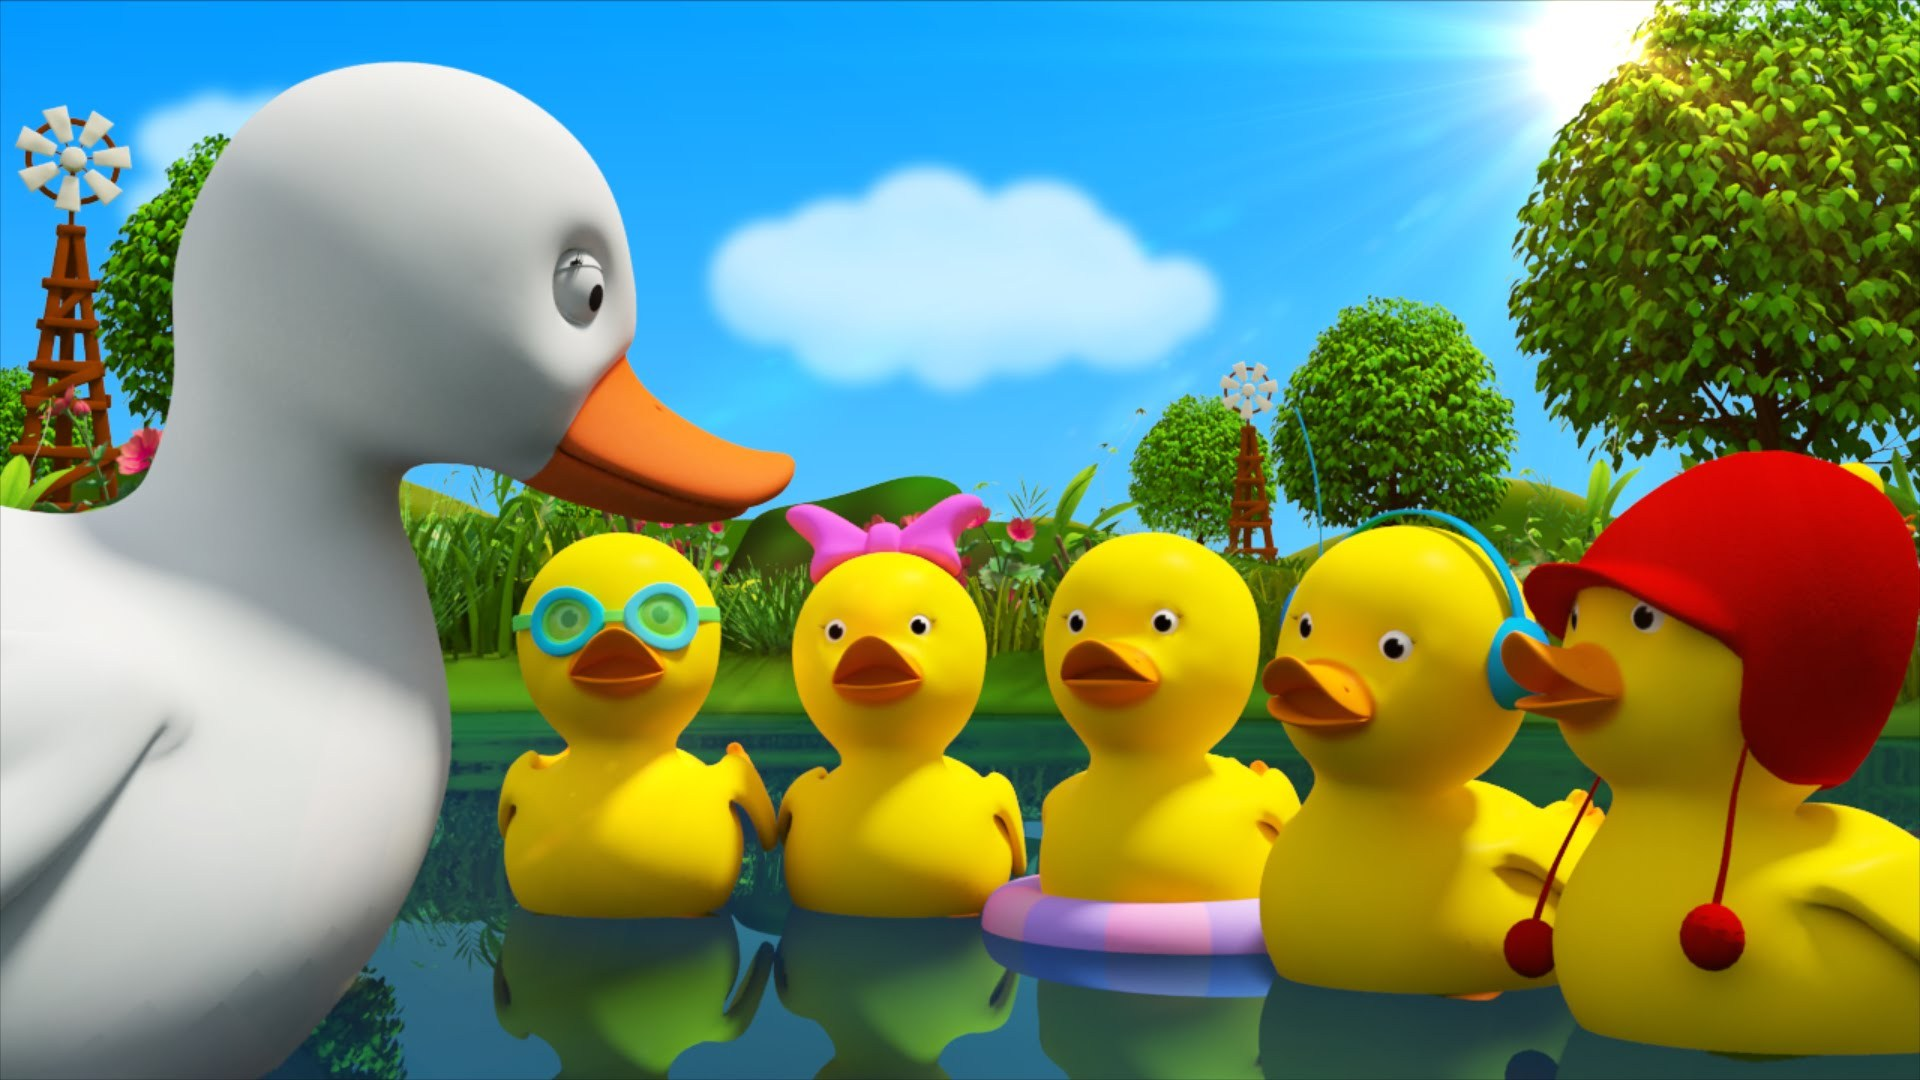 Beautiful Rhymes On Duck For Kids Amp Children In Simple English